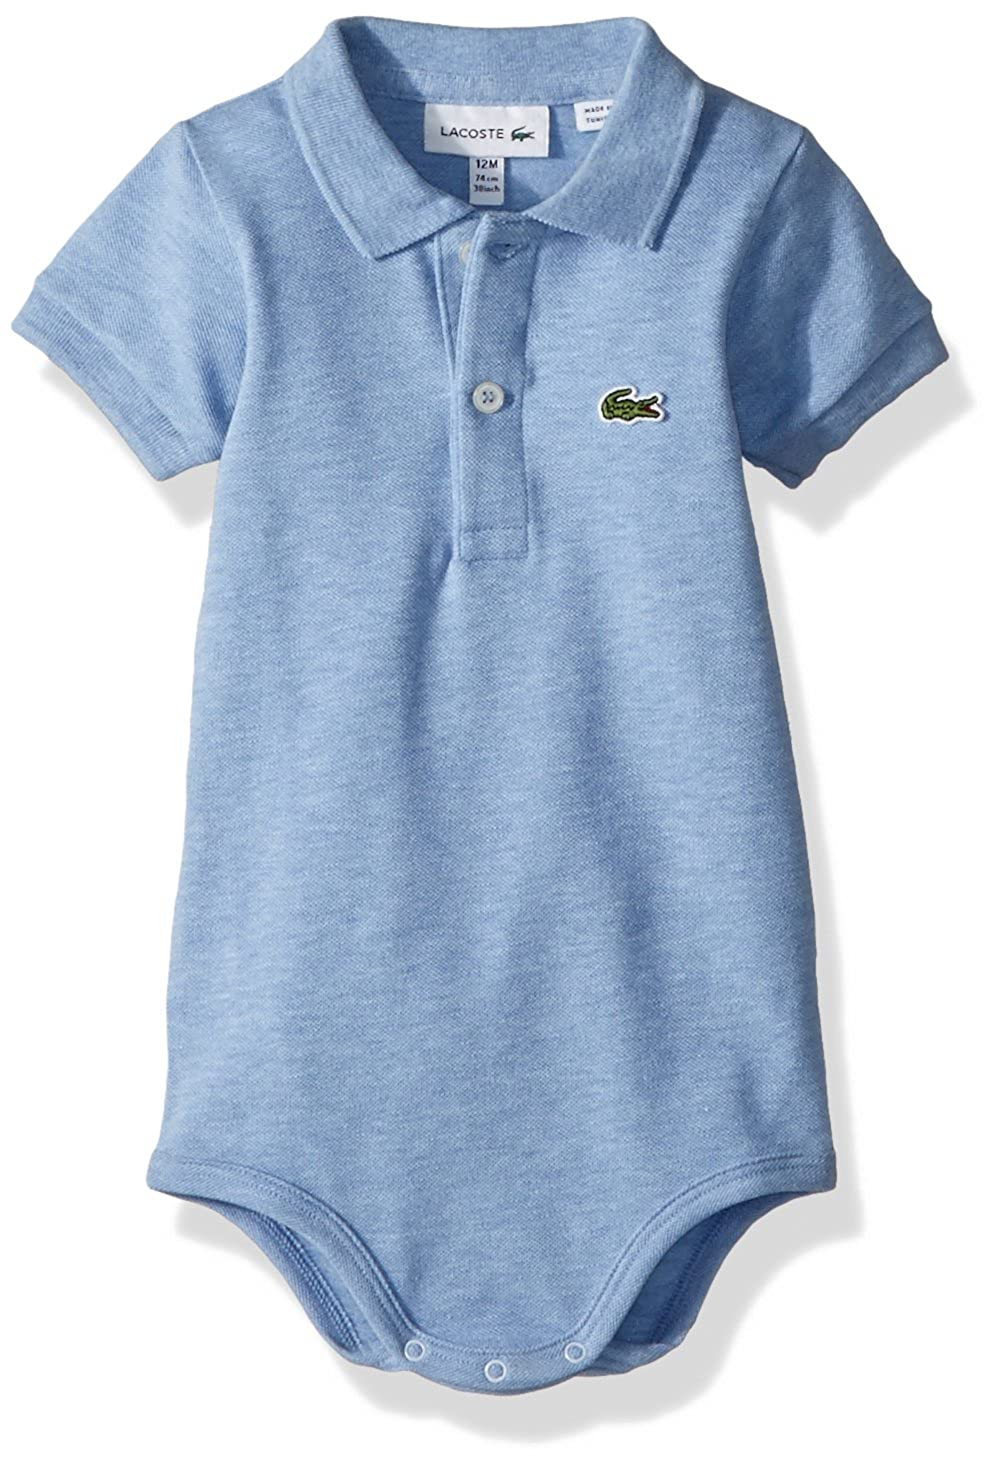 730712f254ccd Lacoste Baby Boys Layette Short Sleeve Pique Body Gift Box